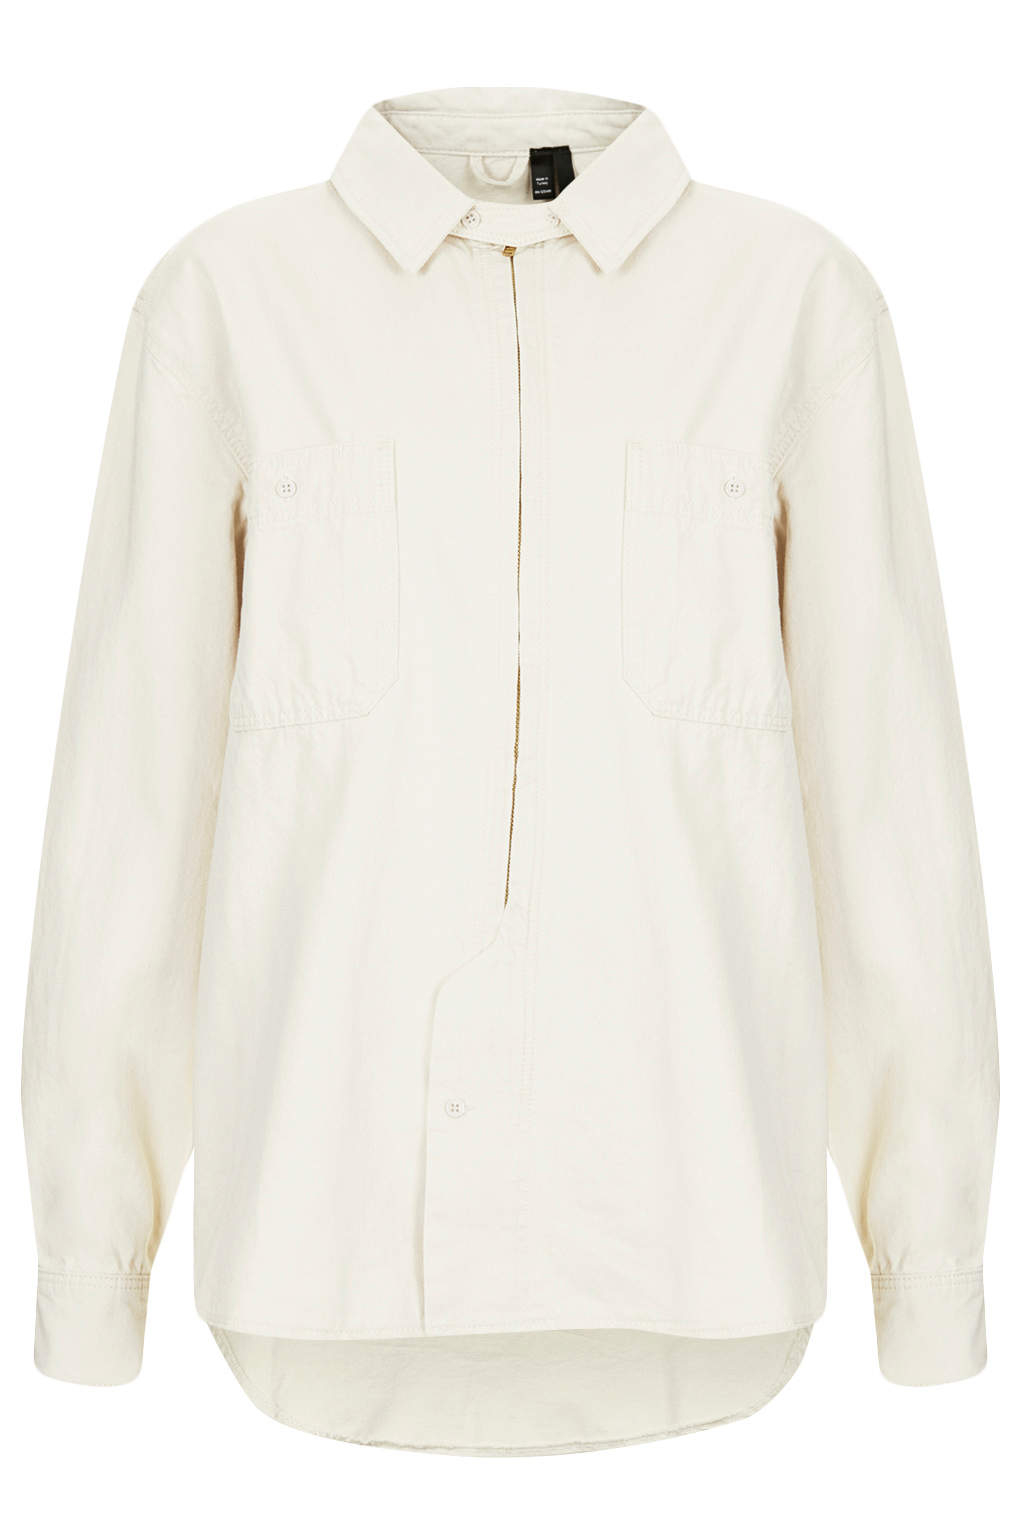 Topshop womens calico shirt by boutique ivory in white for Womens denim shirts topshop